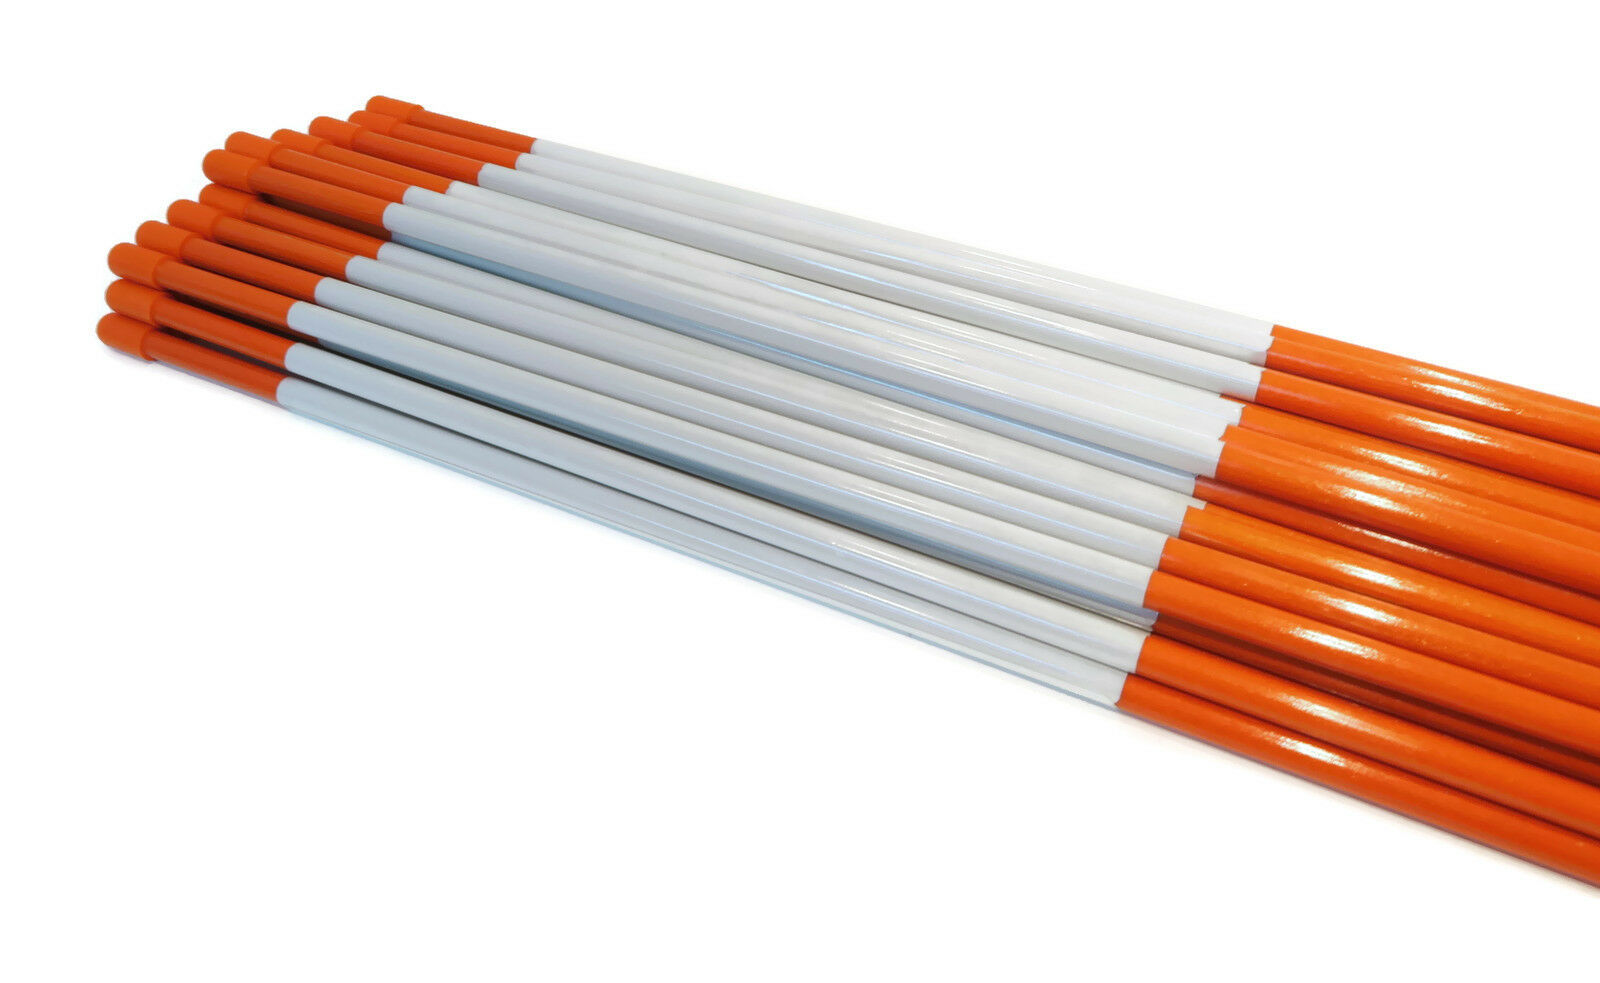 Yard 1//4 inch for Lawn /& Grass Driveway Pack of 10 Pathway Sticks 48 inches